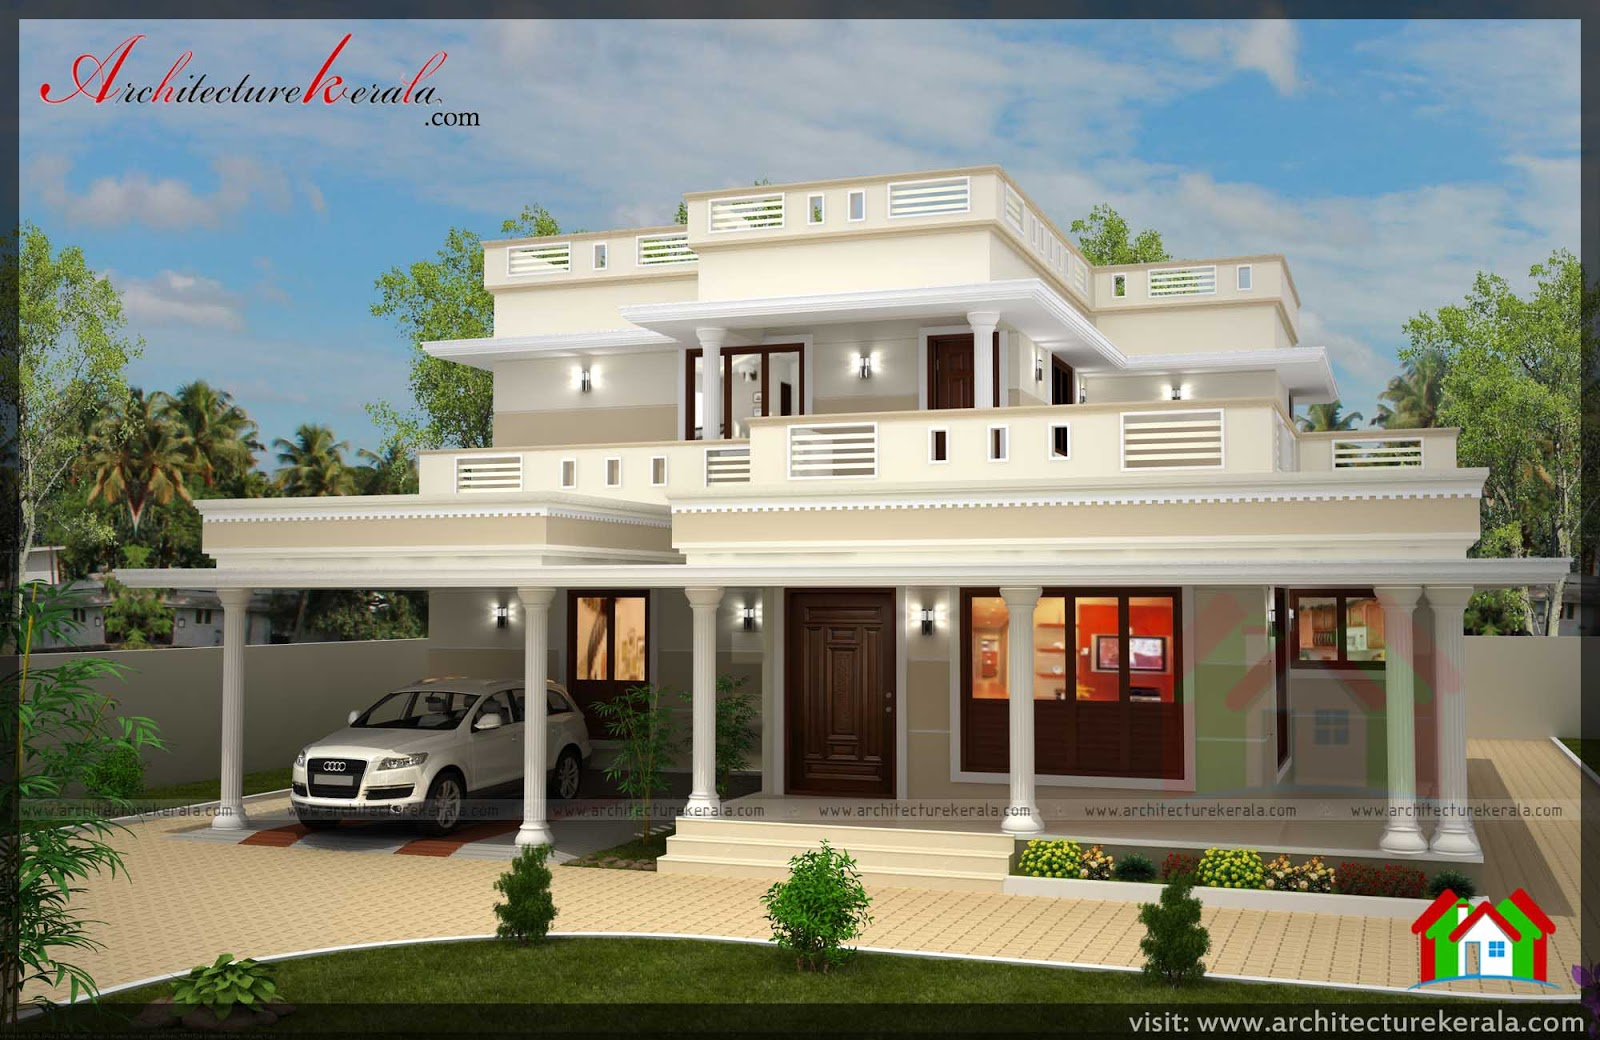 4 bed house plan with pooja room architecture kerala for House plans in kerala with 2 bedrooms